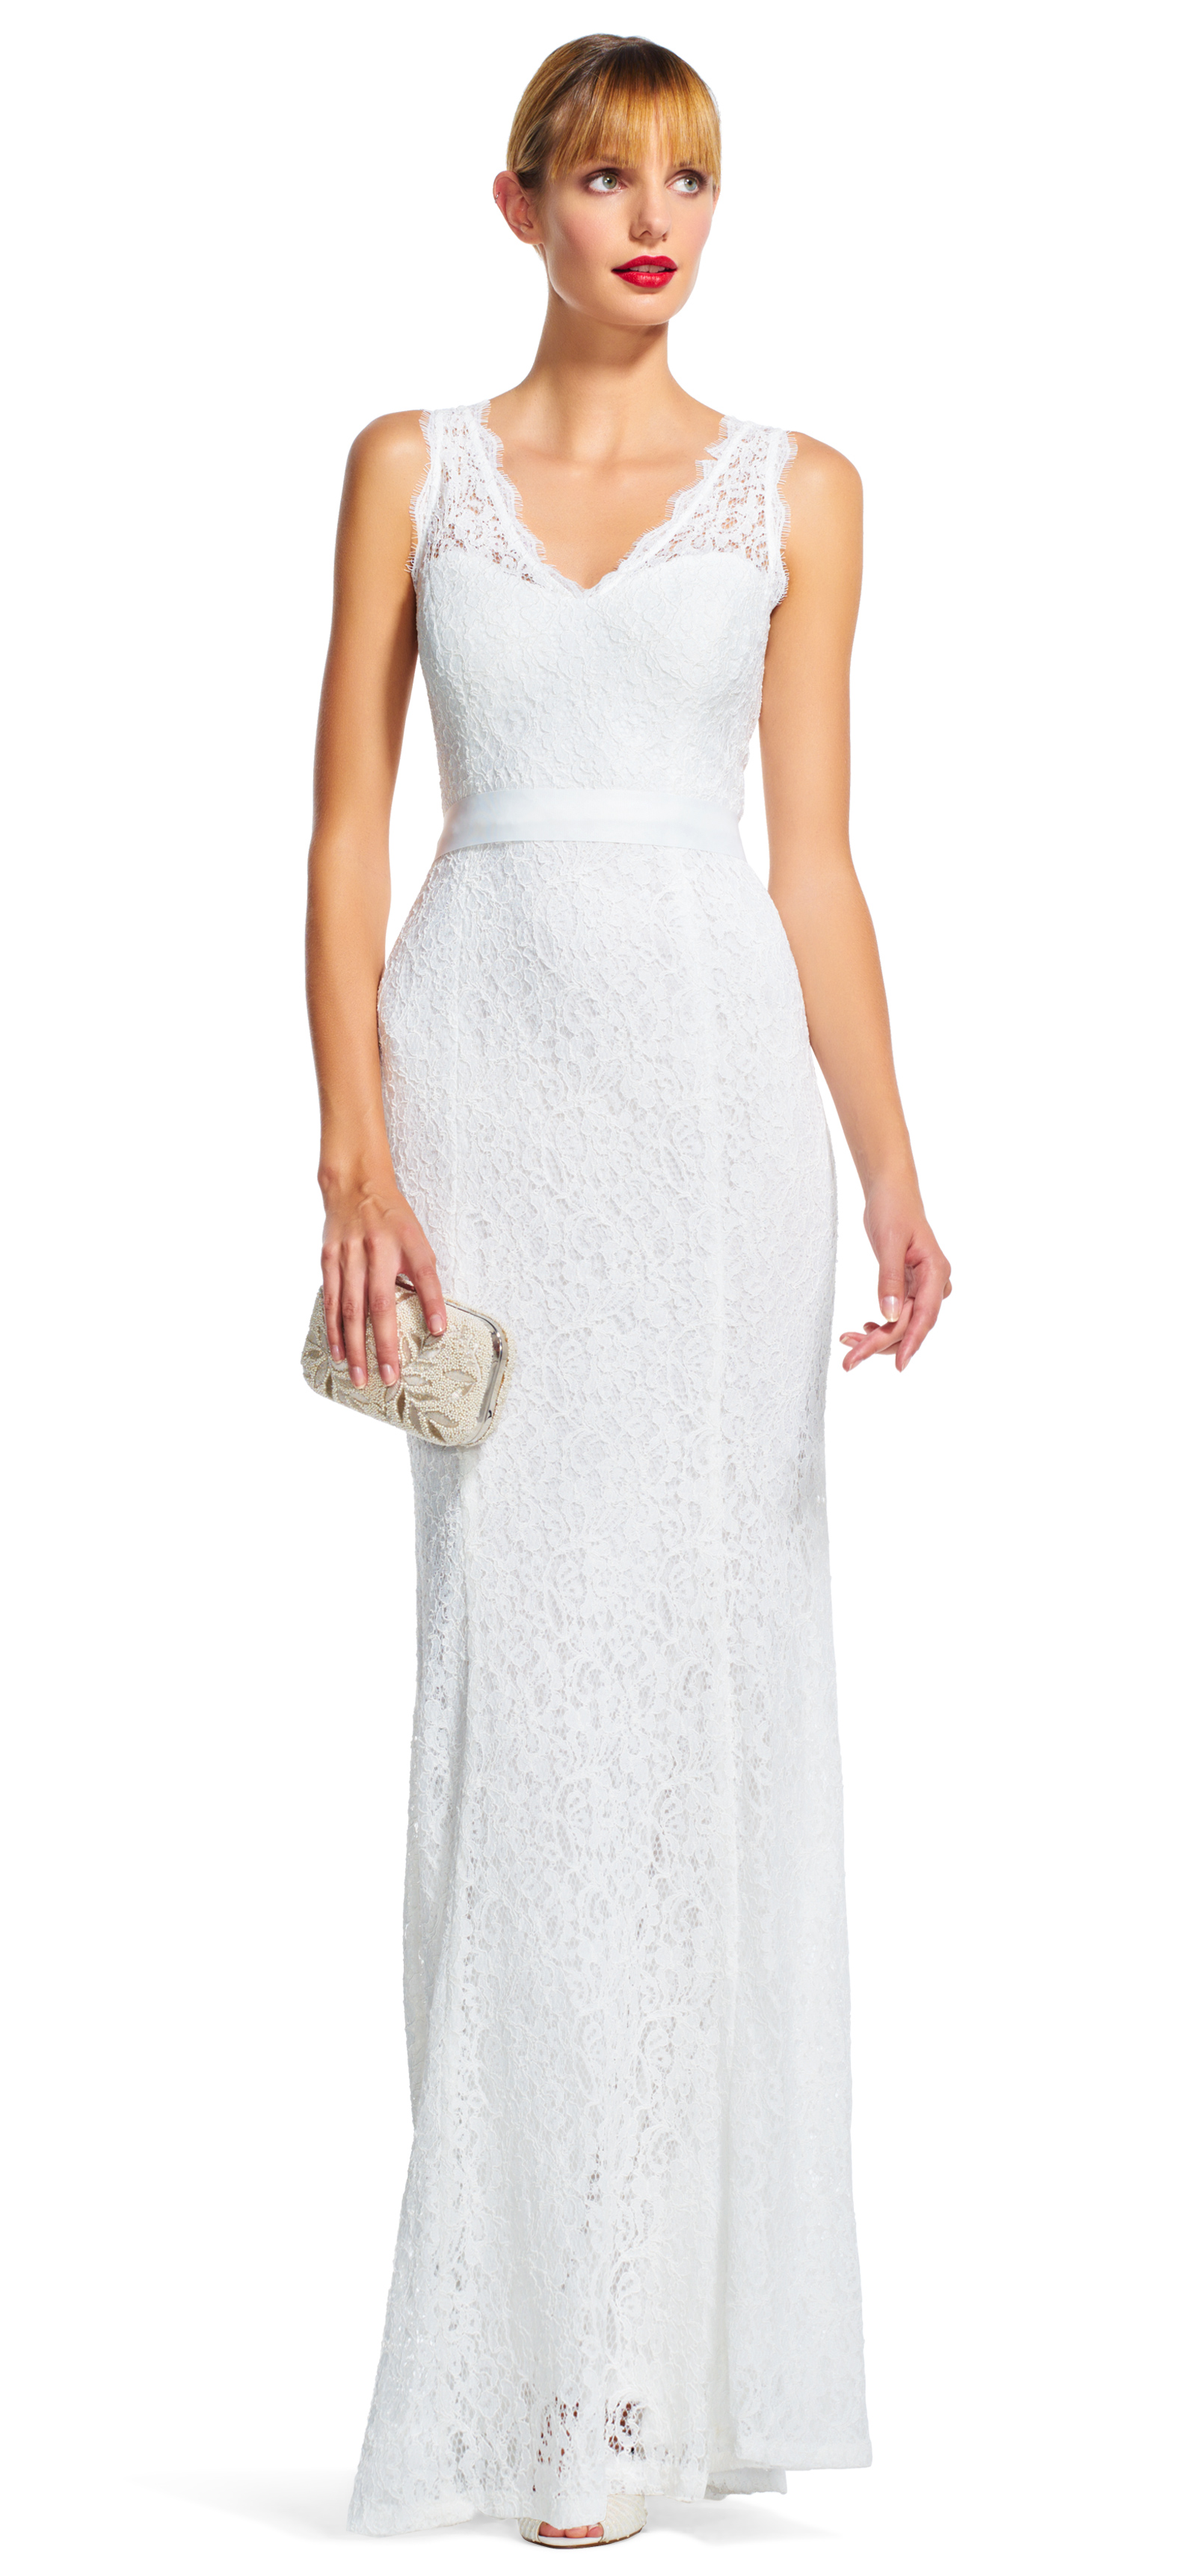 10 Adrianna Papell Gowns That Work For Your Second Wedding - BridalPulse